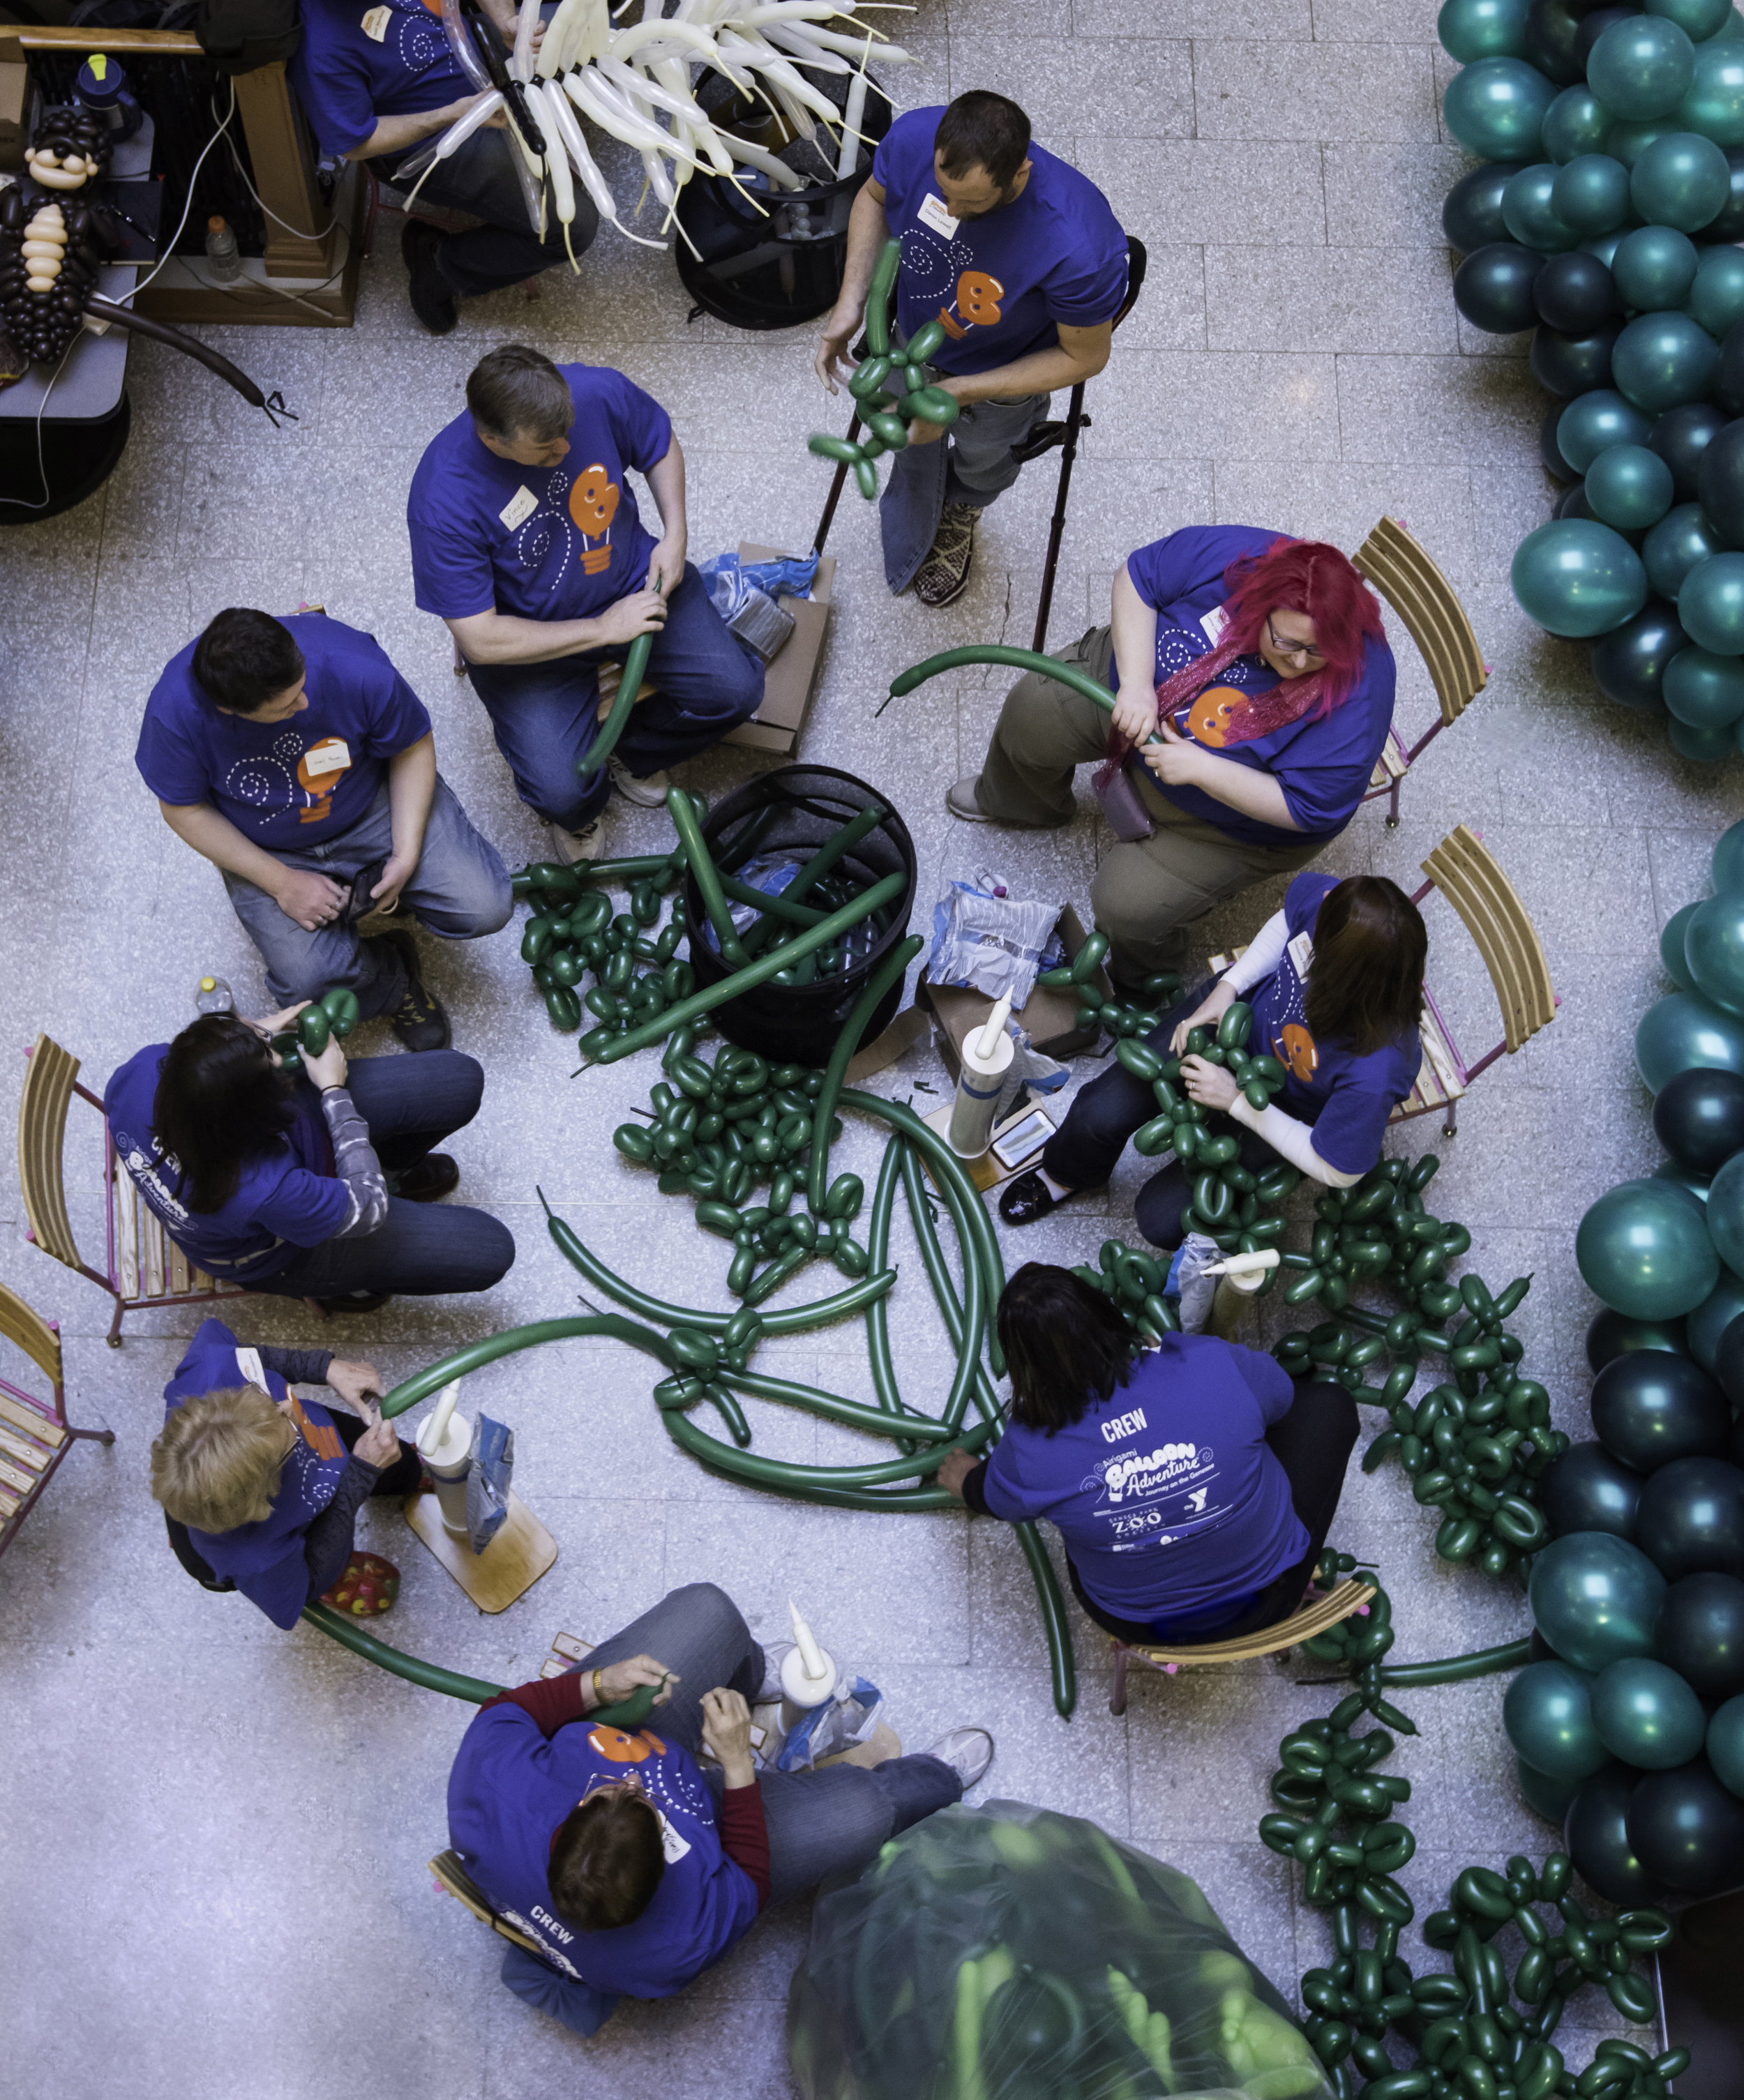 """Volunteers from around the country and the world work on the installation. // University of Rochester graduate Larry Moss '92 and wife Kelly Cheatle work on """"Airigami Balloon Adventure: Journey on the Genesee,"""" a five-story, 50-foot sculpture made from more than 40,000 compostable balloons at the Sibley Building atrium in Rochester, NY January 28, 2016. // photo by J. Adam Fenster / University of Rochester"""